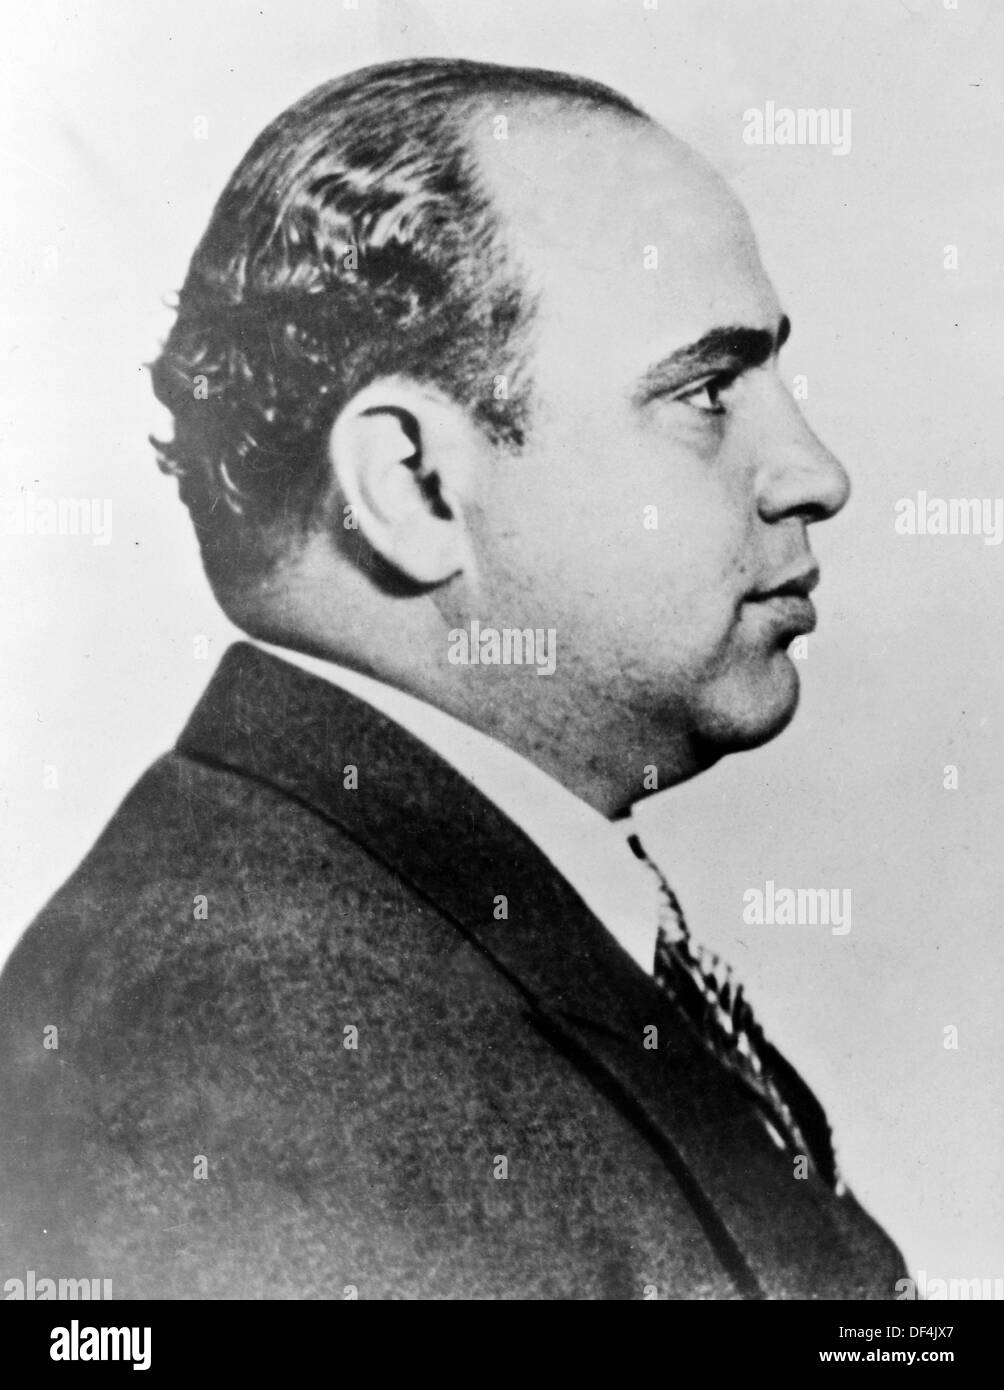 """Alphonse Gabriel """"Al Capone"""" – From Obscurity to Chicago Outfit Boss"""